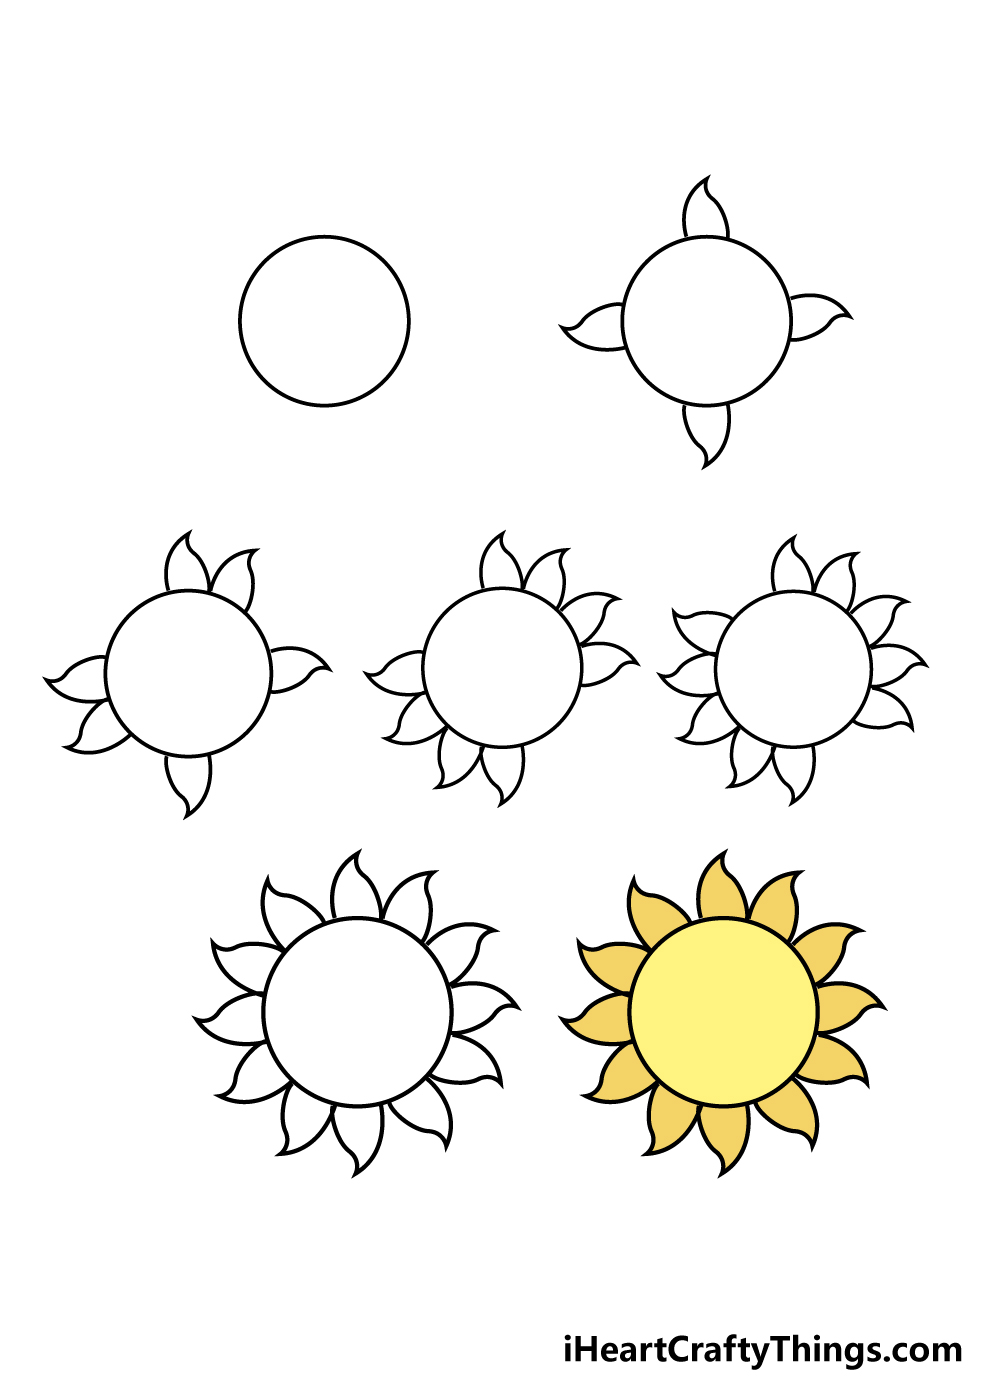 how to draw sun in 7 steps